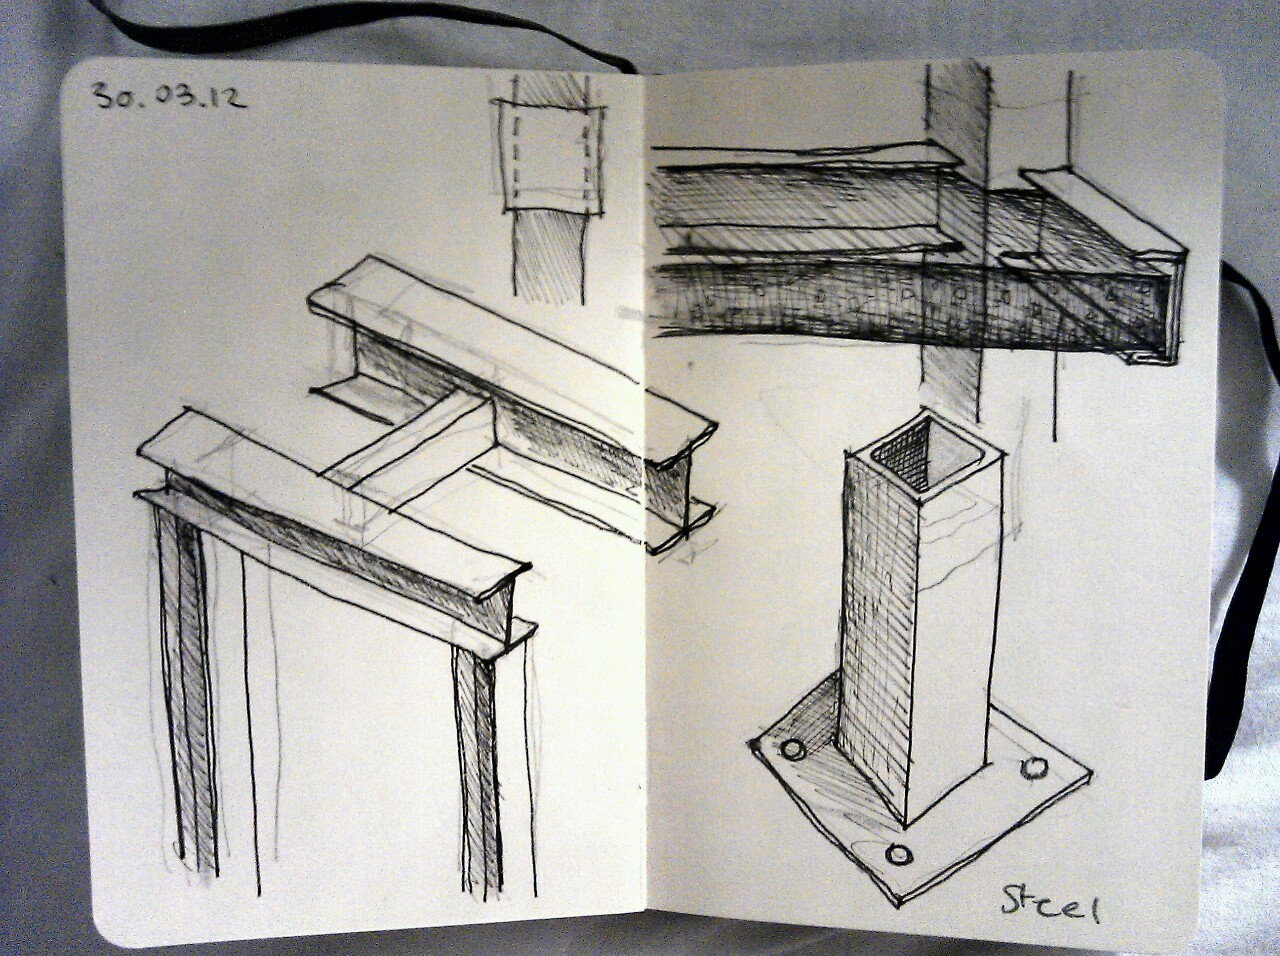 365 drawings later … day 59 … steel (I've been worrying about it all week)